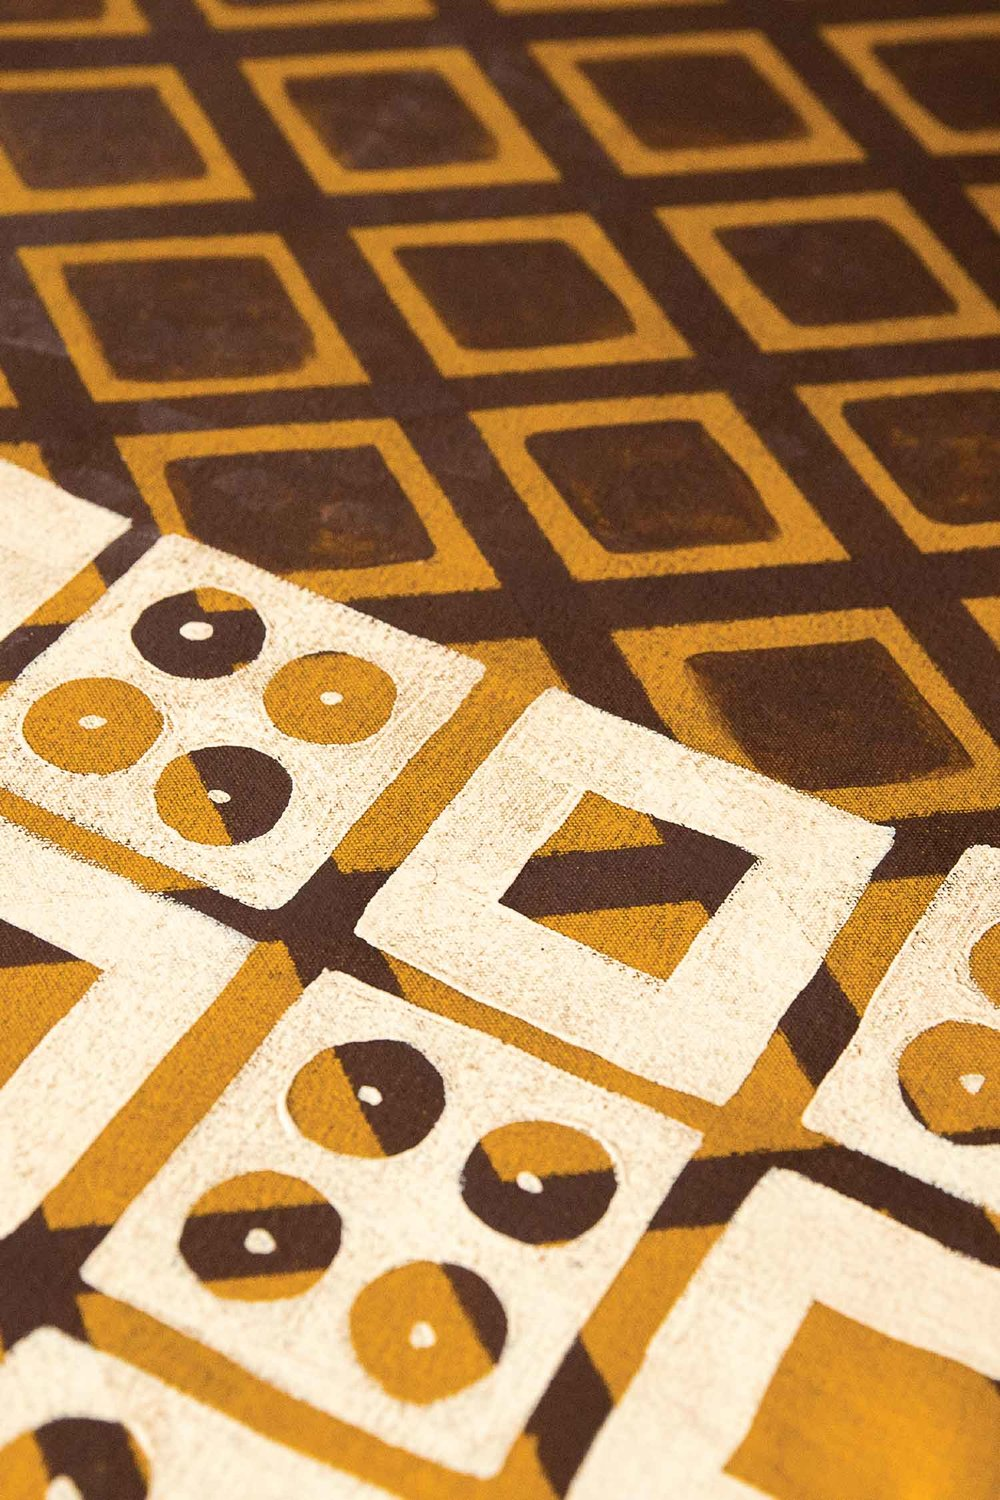 Detail of a historic Mennonite floor pattern.